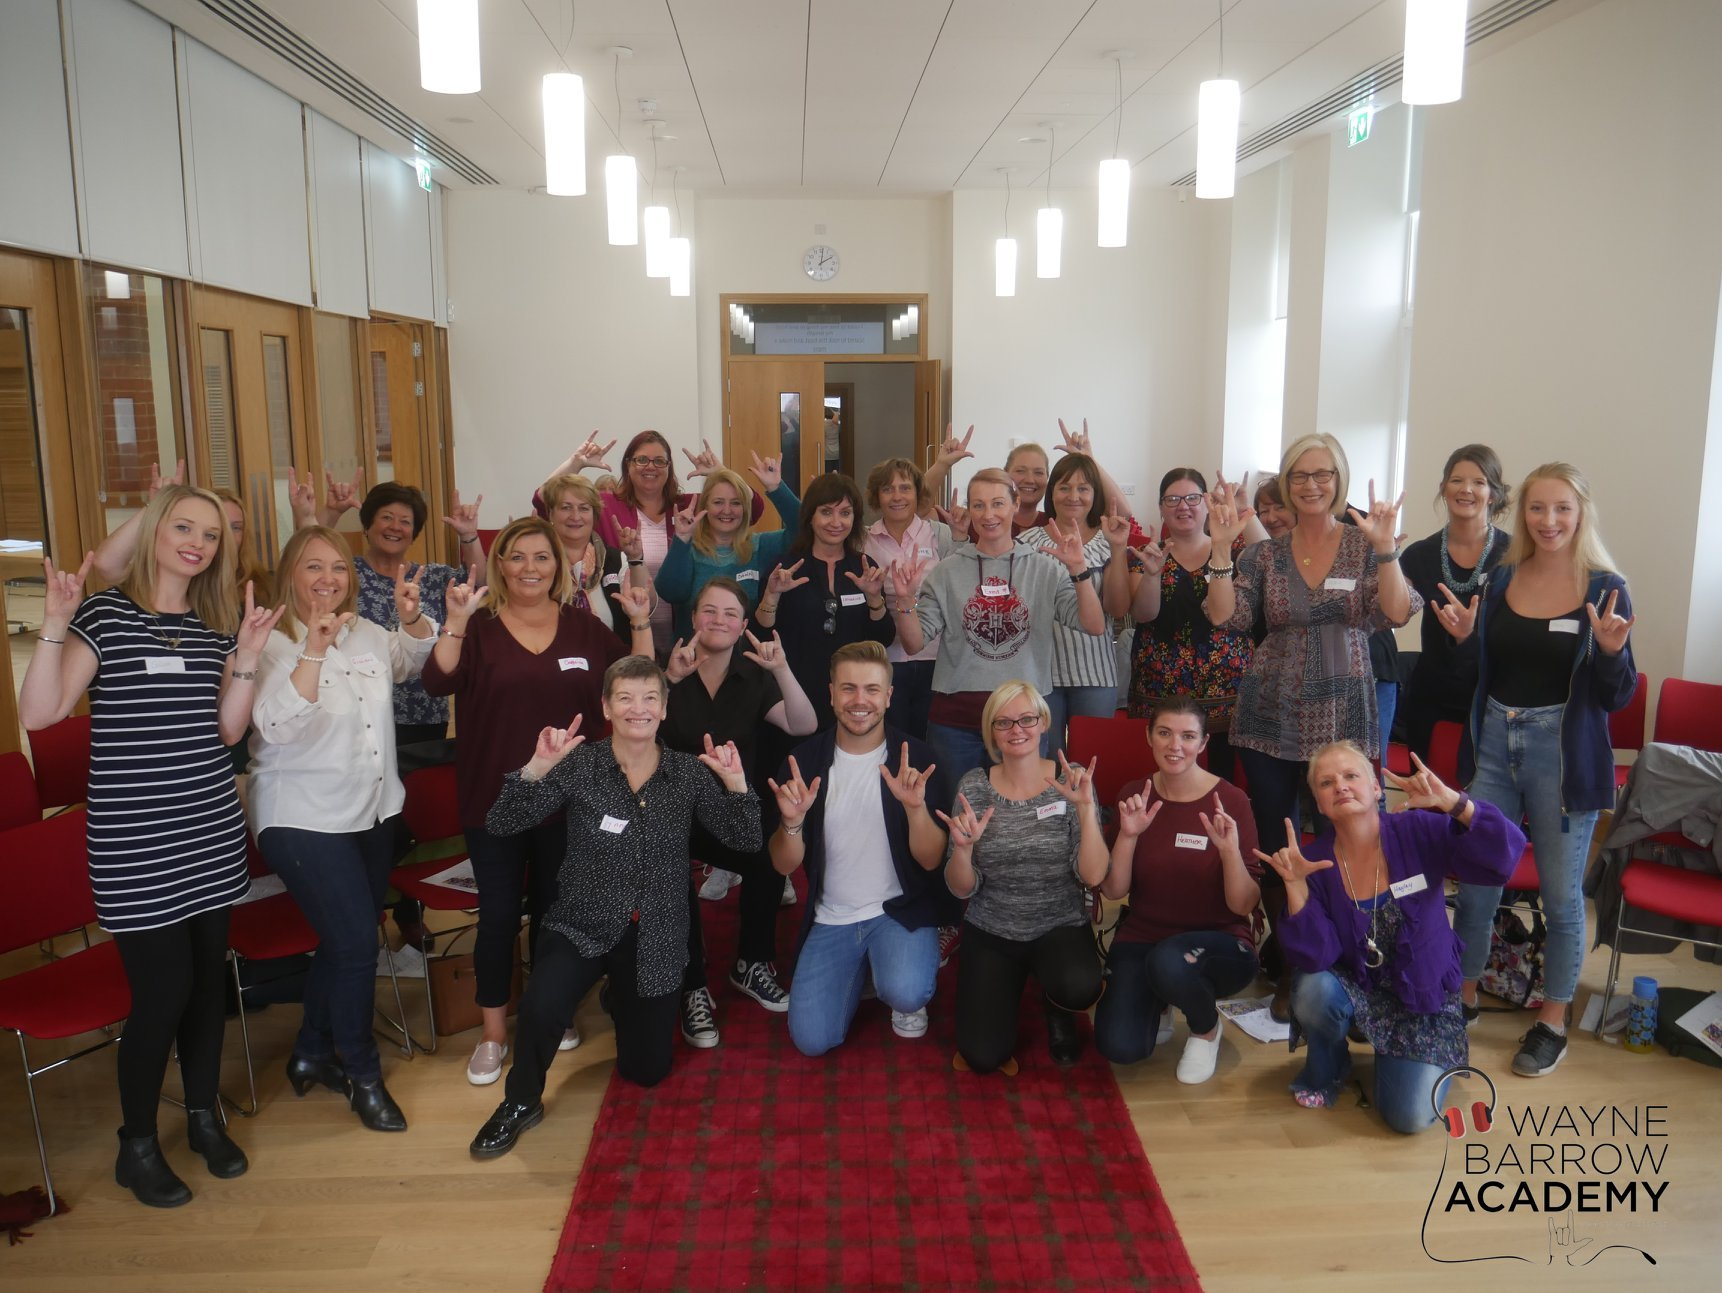 This month's weekend of sign language sessions follows a successful event, also held over two days, in August 2018